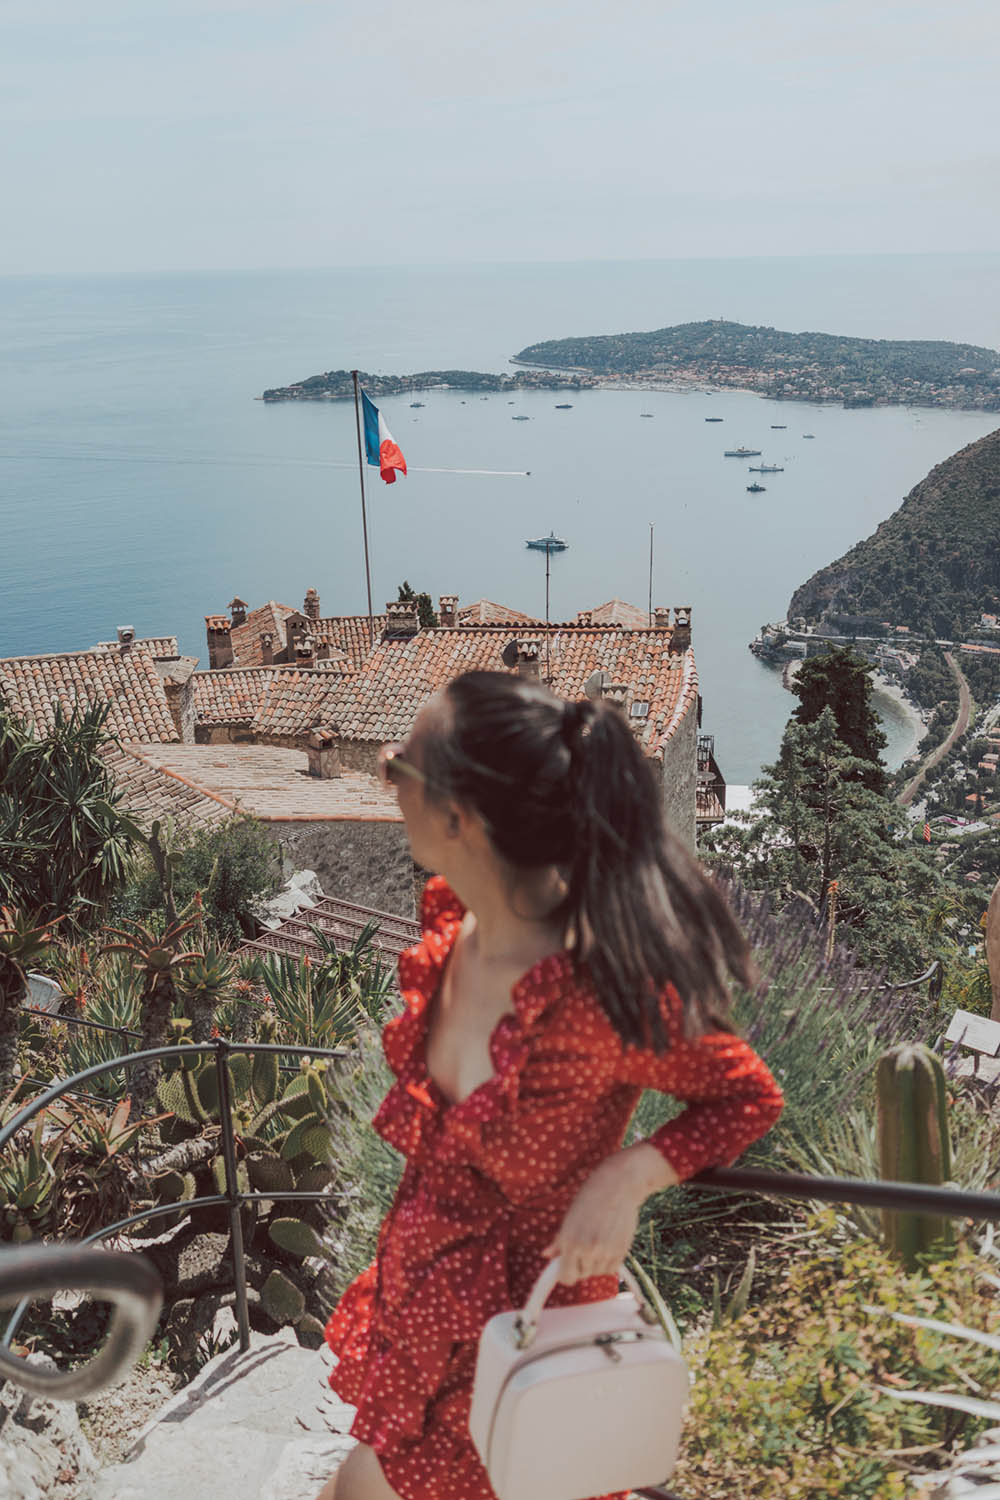 Day Trip To Eze Village South of France Complete Guide - Perched on a hill over the Mediterranean Sea, the medieval French town is a must if you are visiting the Côte d'Azur.